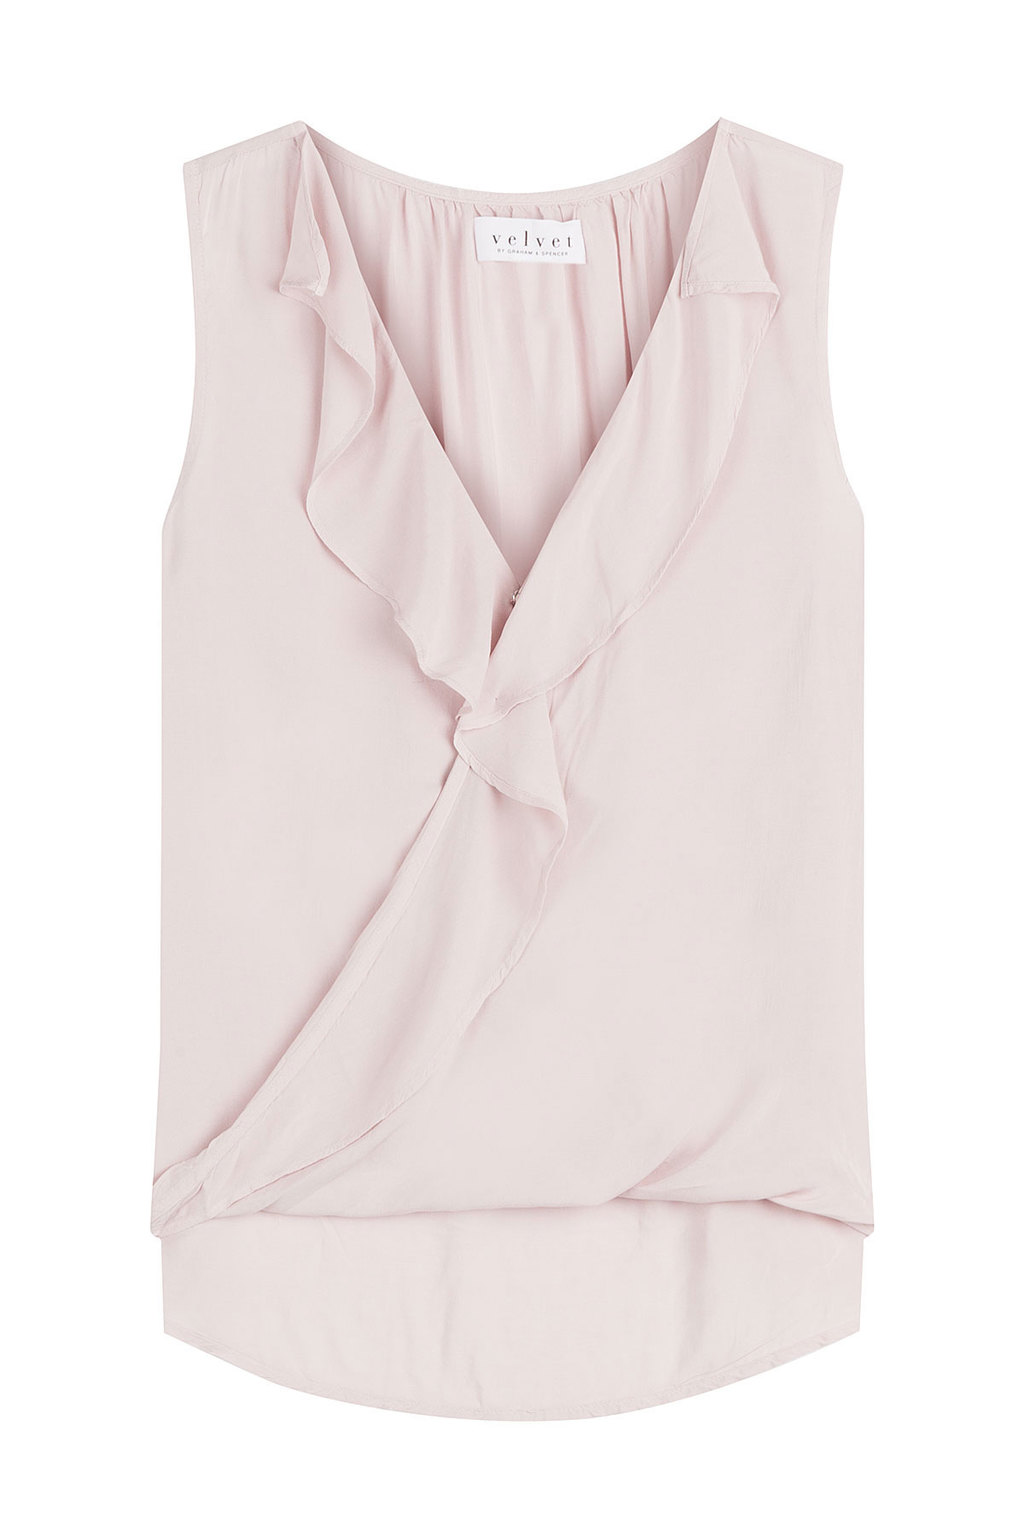 Sleeveless Top With Ruffles - neckline: v-neck; pattern: plain; sleeve style: sleeveless; style: wrap/faux wrap; predominant colour: blush; occasions: casual; length: standard; fibres: viscose/rayon - 100%; fit: body skimming; sleeve length: sleeveless; bust detail: bulky details at bust; pattern type: fabric; texture group: jersey - stretchy/drapey; season: a/w 2016; wardrobe: highlight